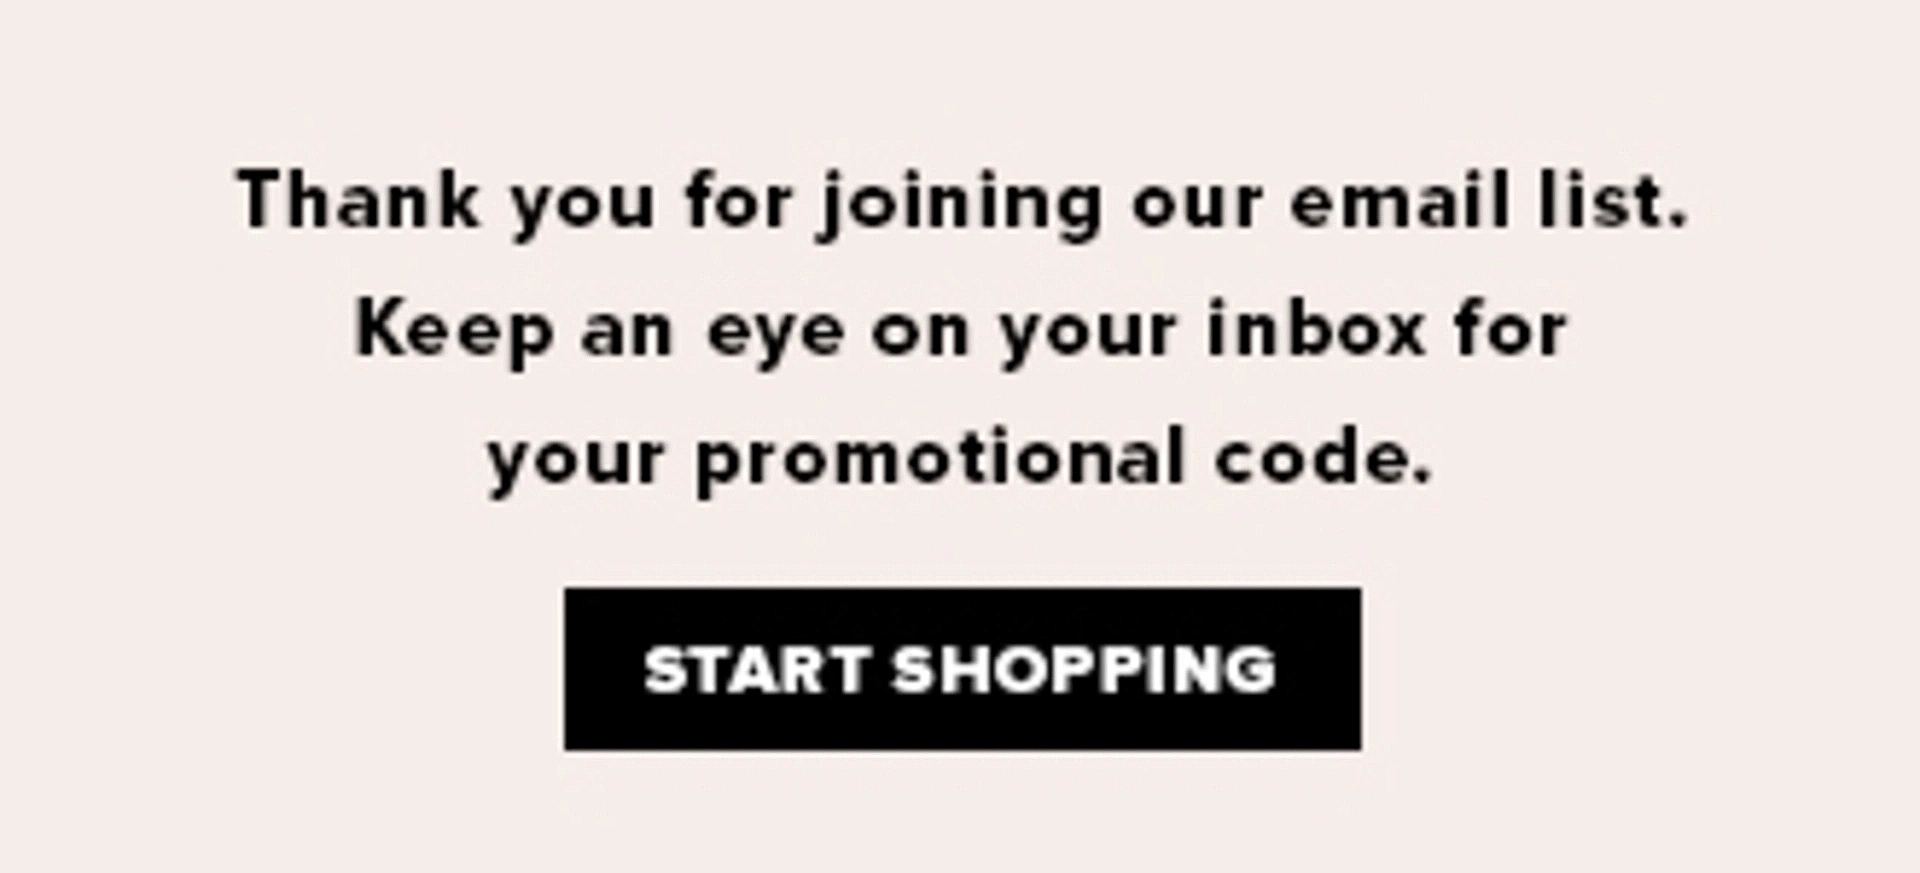 Thank you for joining our mailing list! Keep an eye on your inbox for your promotional code. Start shopping